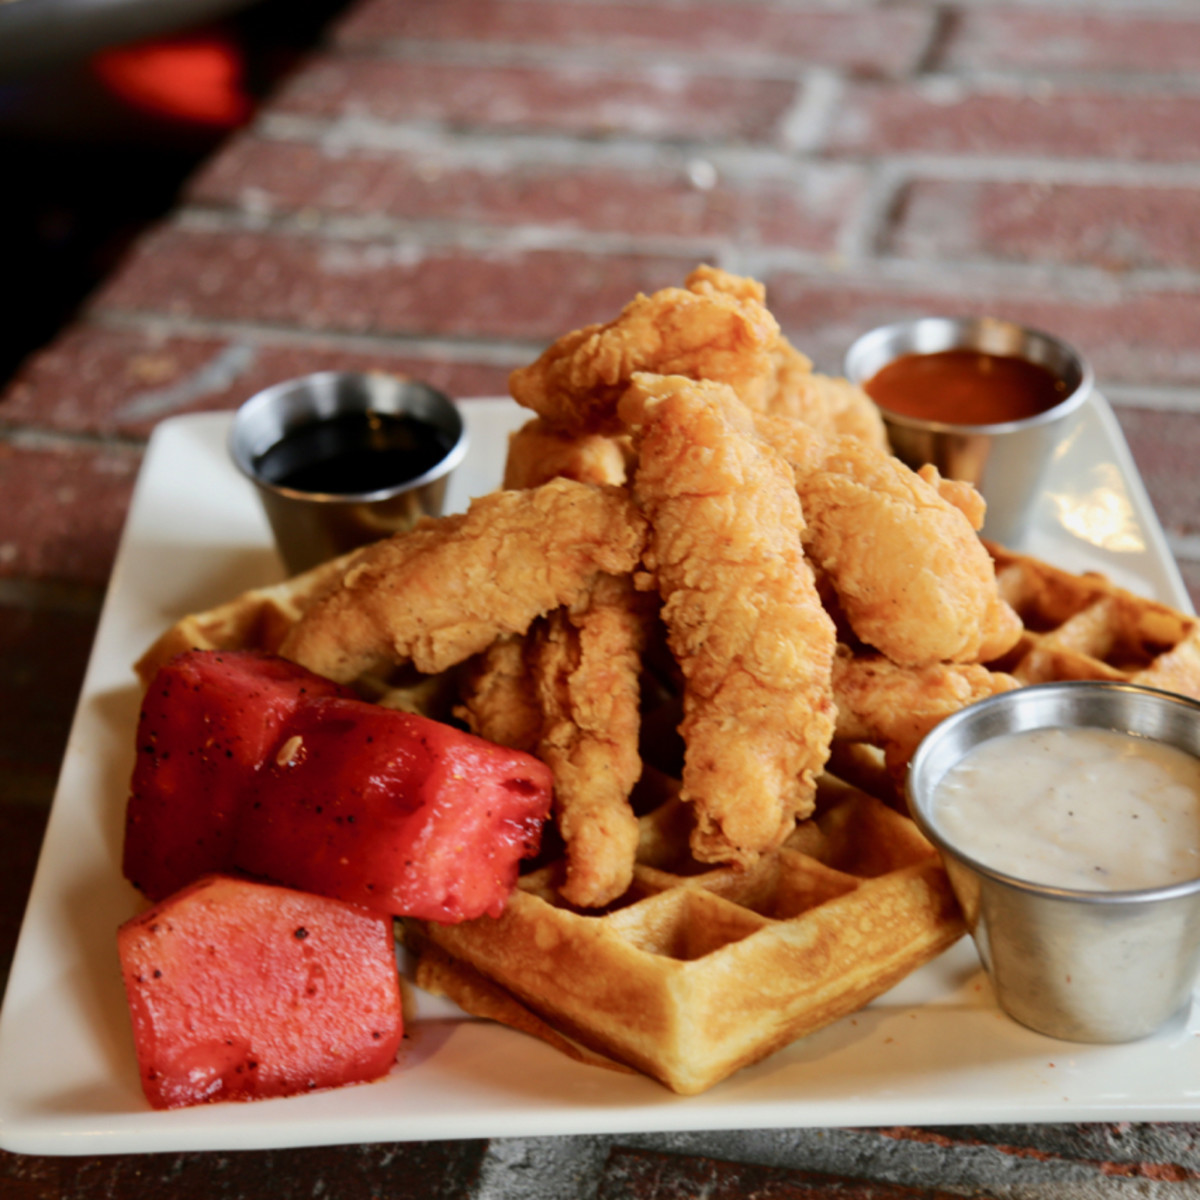 Chicken and waffles with watermelon